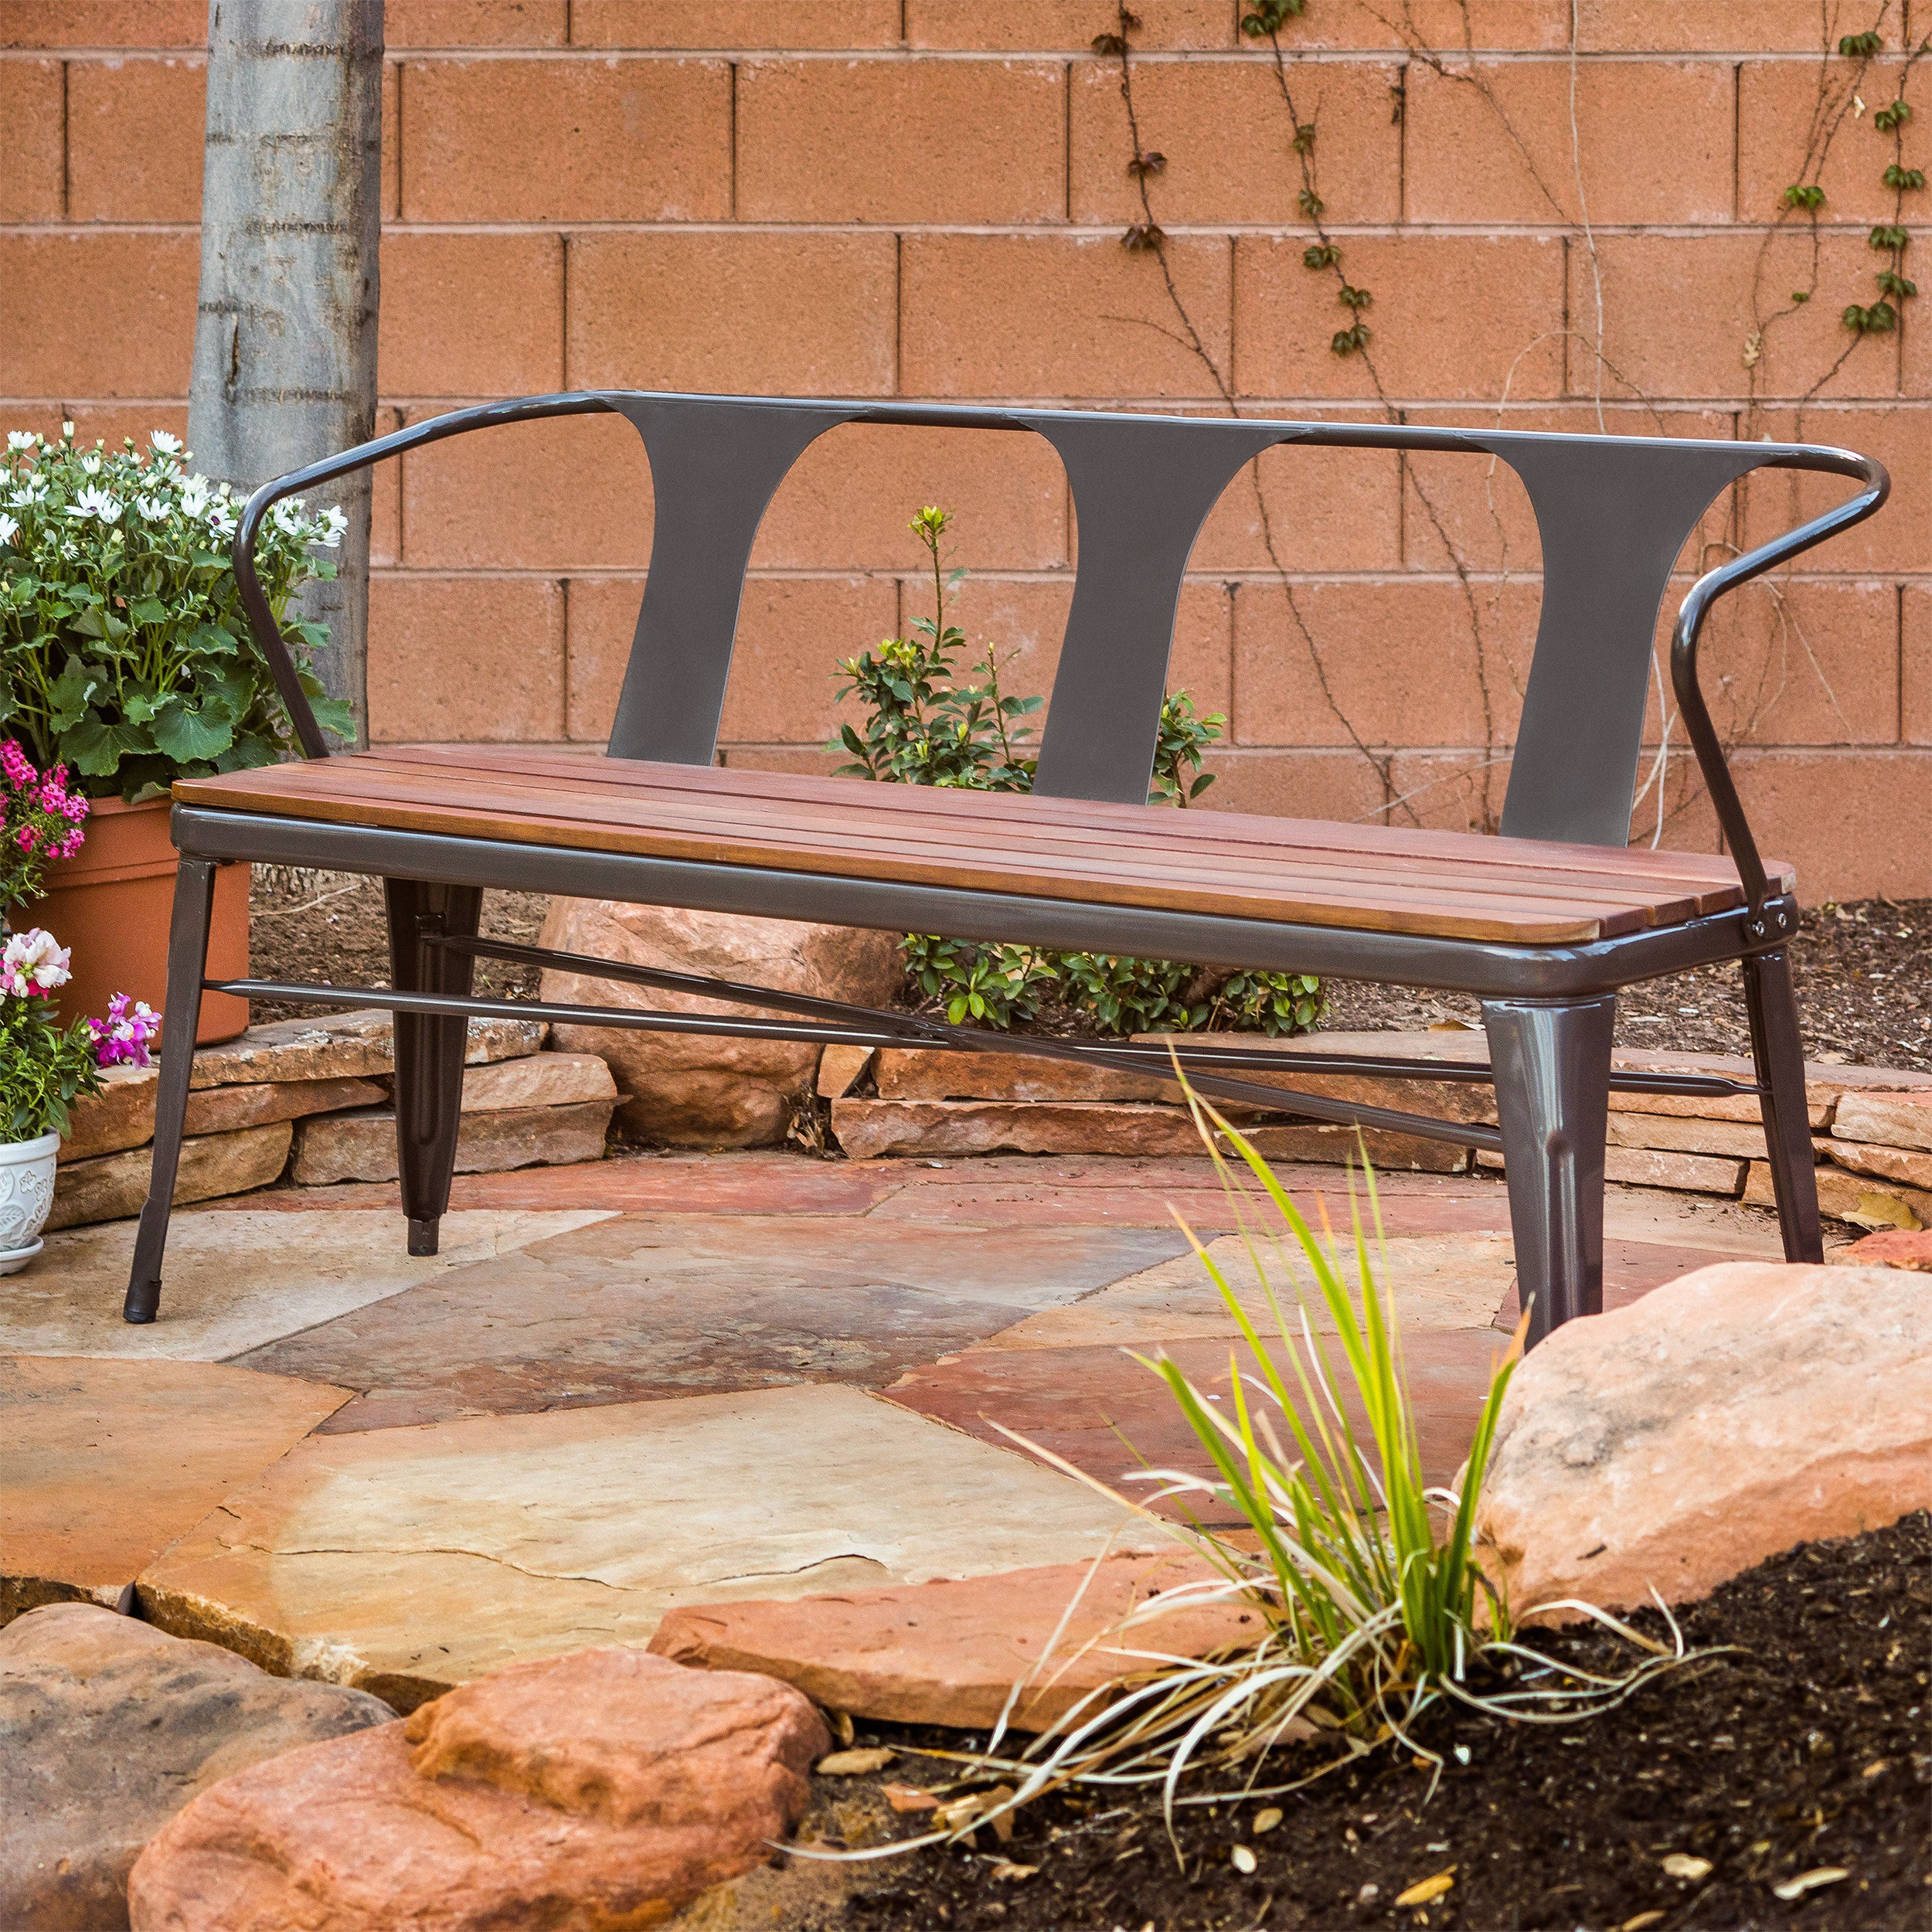 in co seat wooden uk garden duty amazon bench outdoors heavy solid companion outdoor dp hardwood